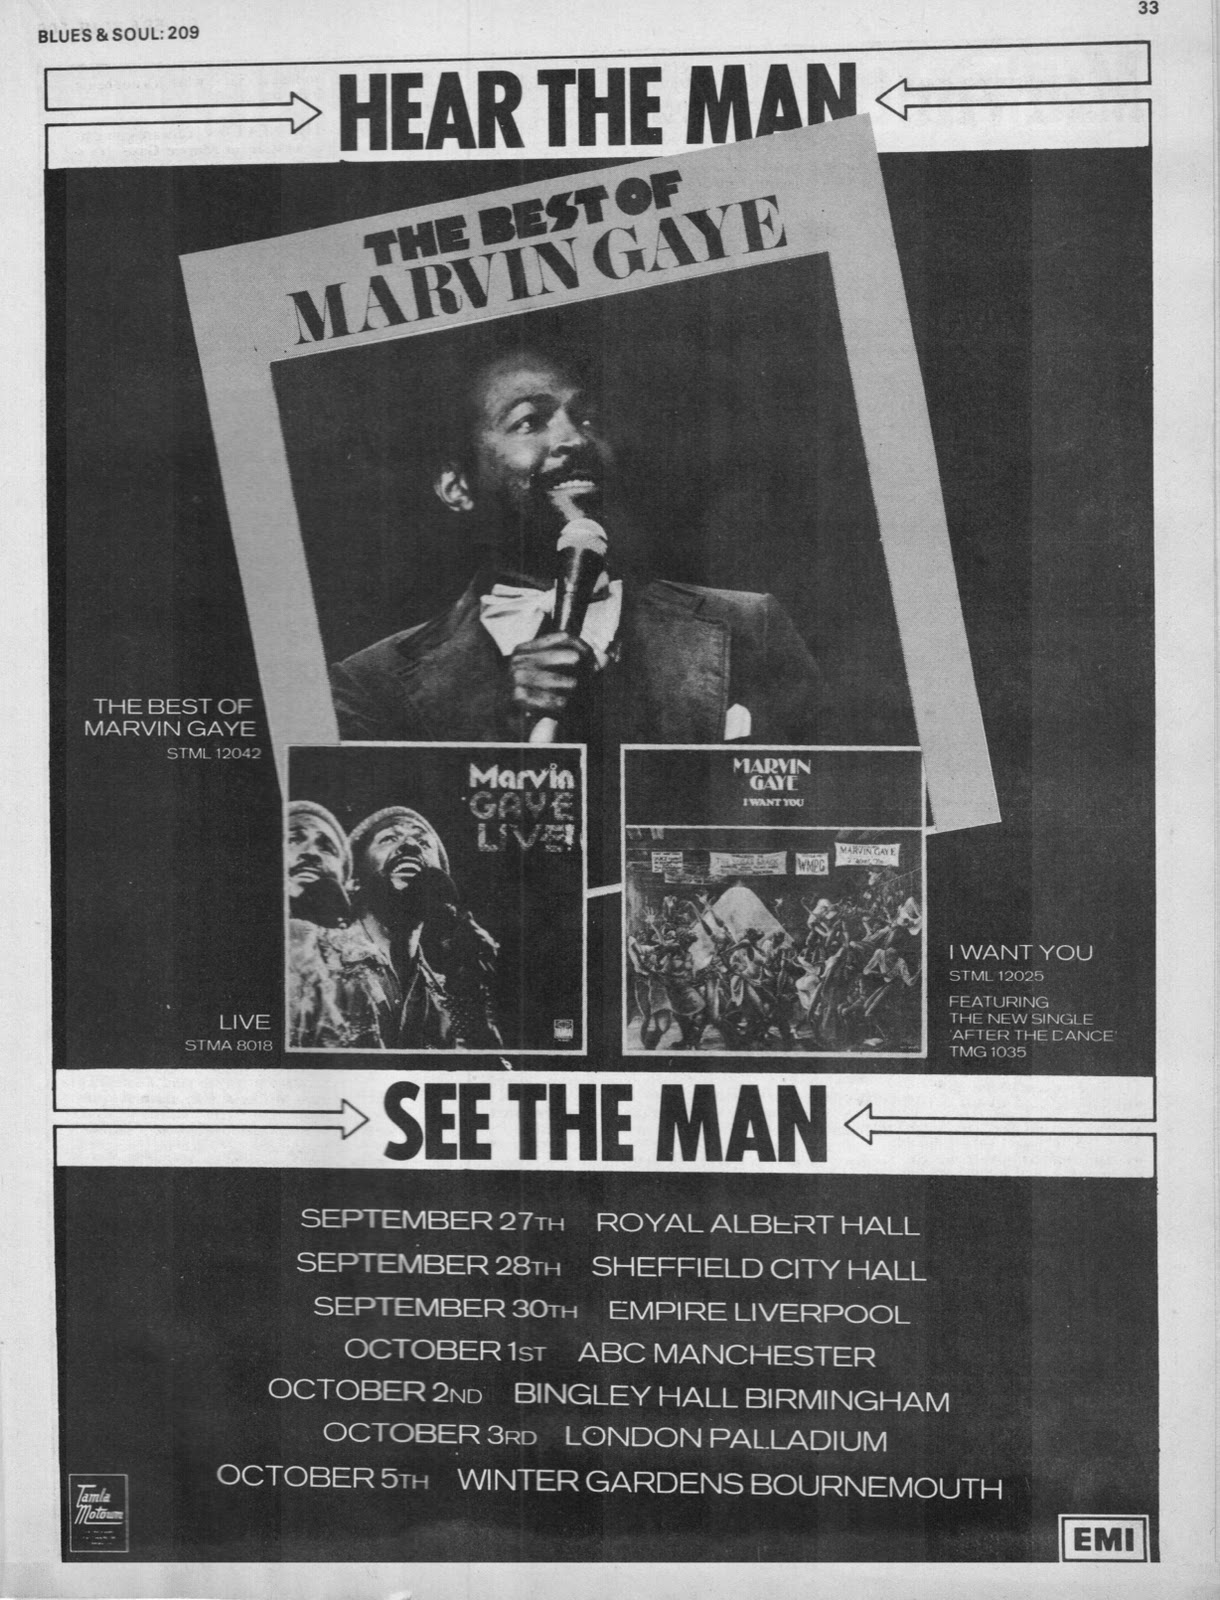 marvin gaye i want you 1976